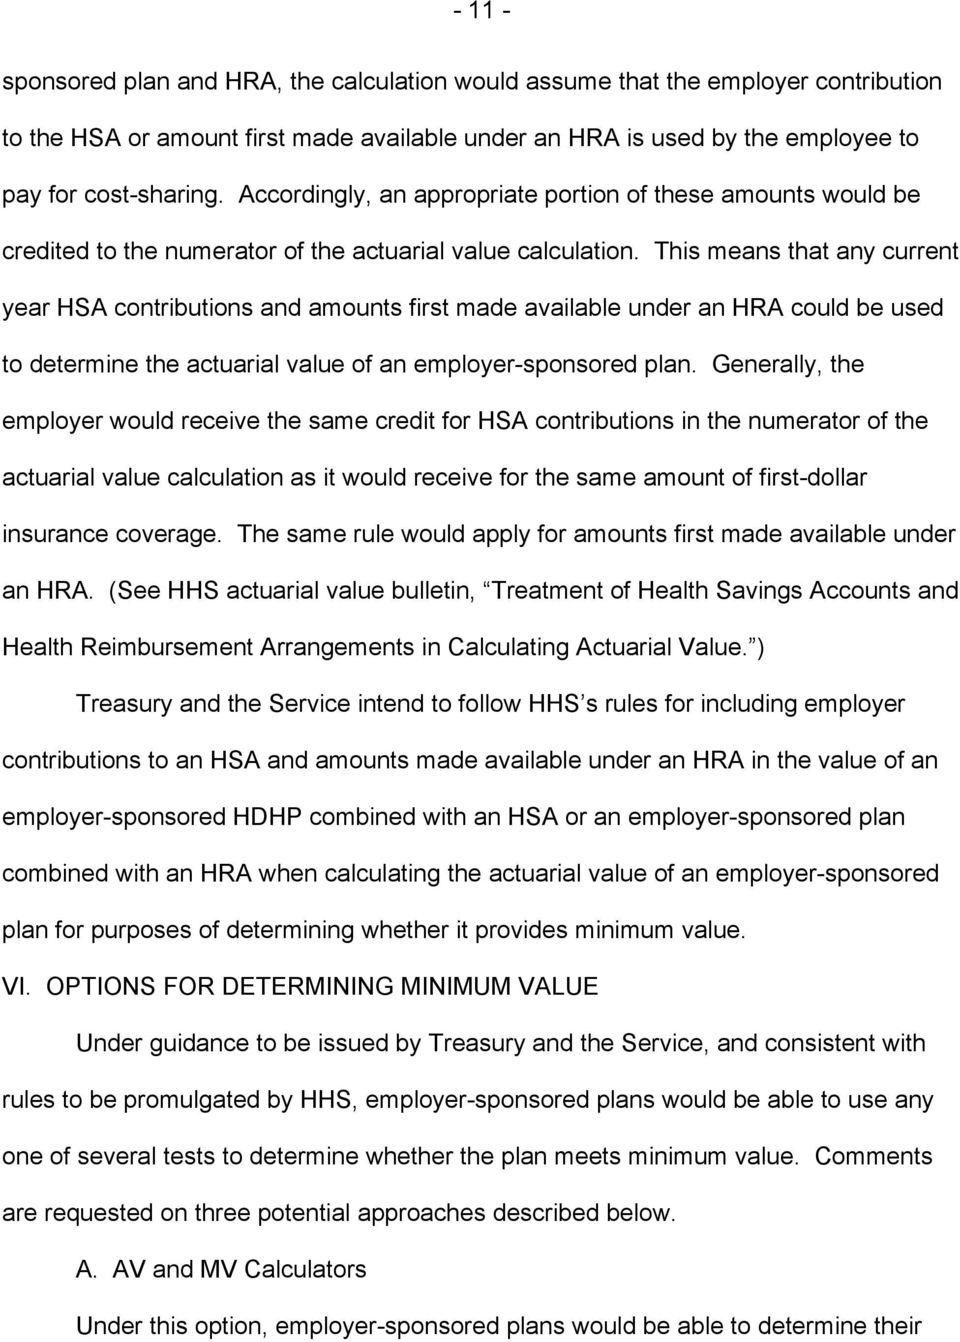 This means that any current year HSA contributions and amounts first made available under an HRA could be used to determine the actuarial value of an employer-sponsored plan.